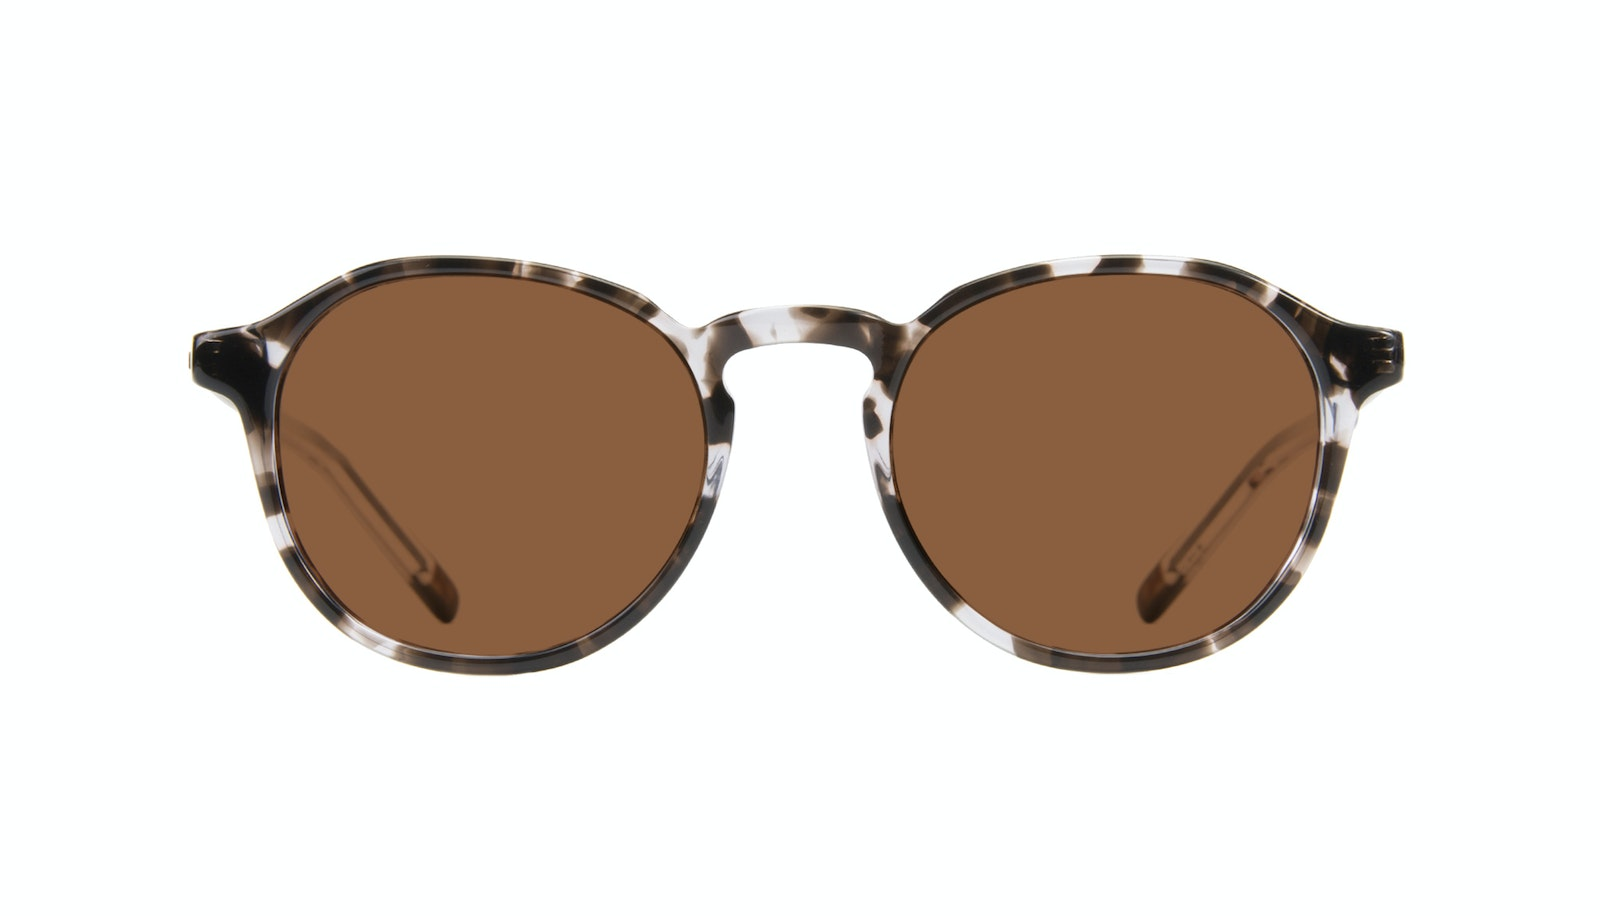 Affordable Fashion Glasses Round Sunglasses Men Prime Mud Tort